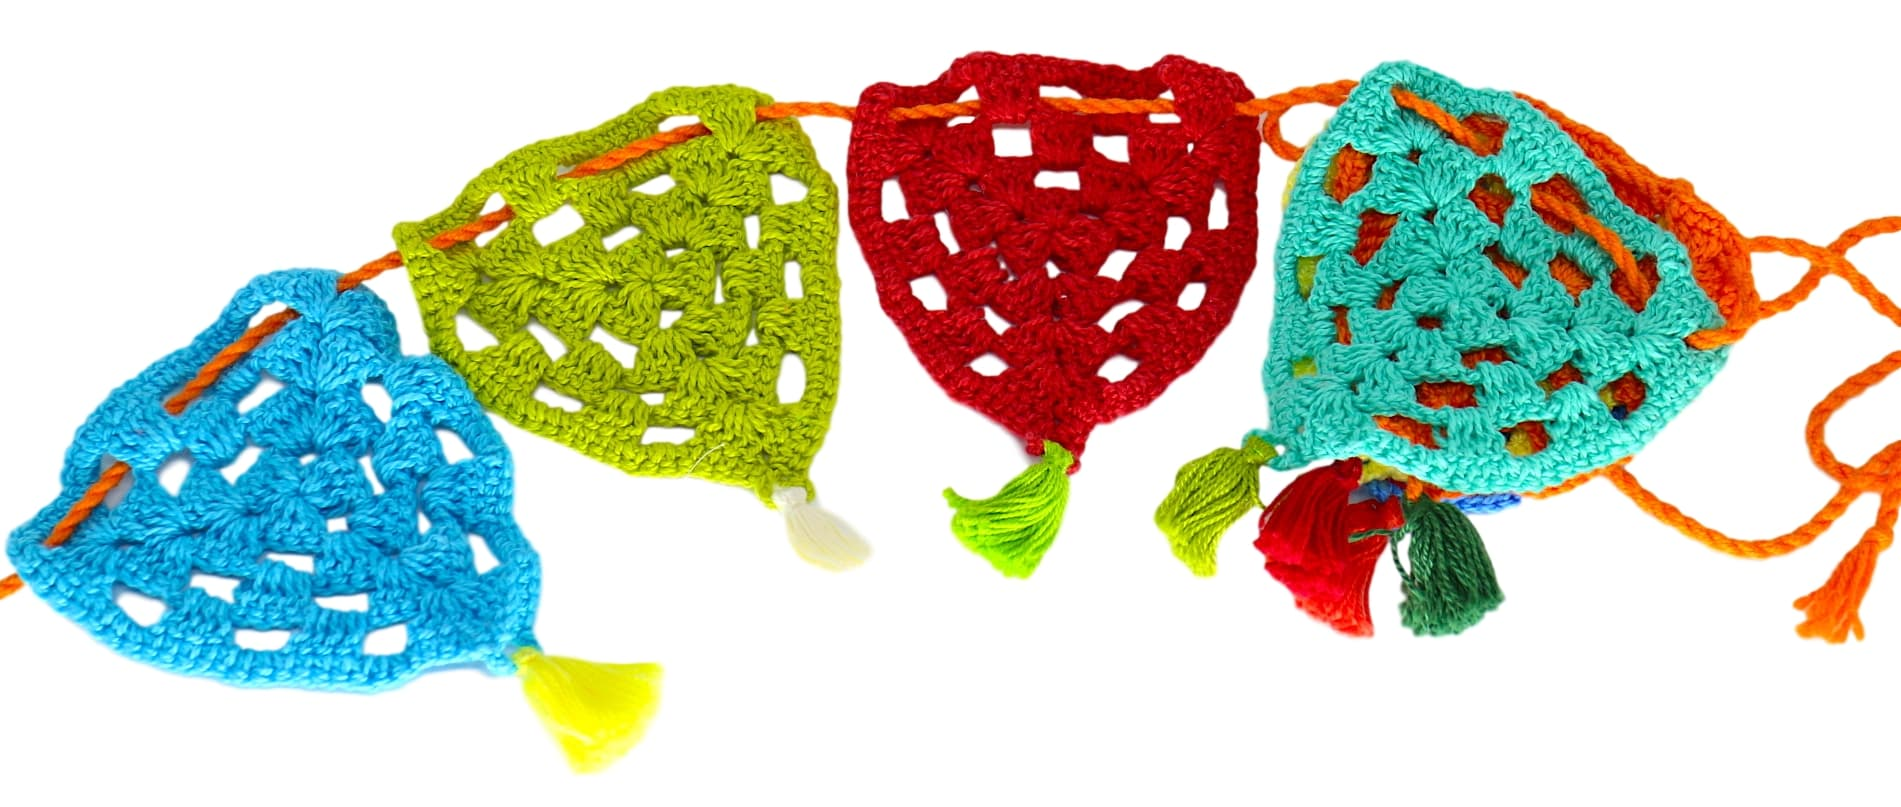 Banderola crochet colorida